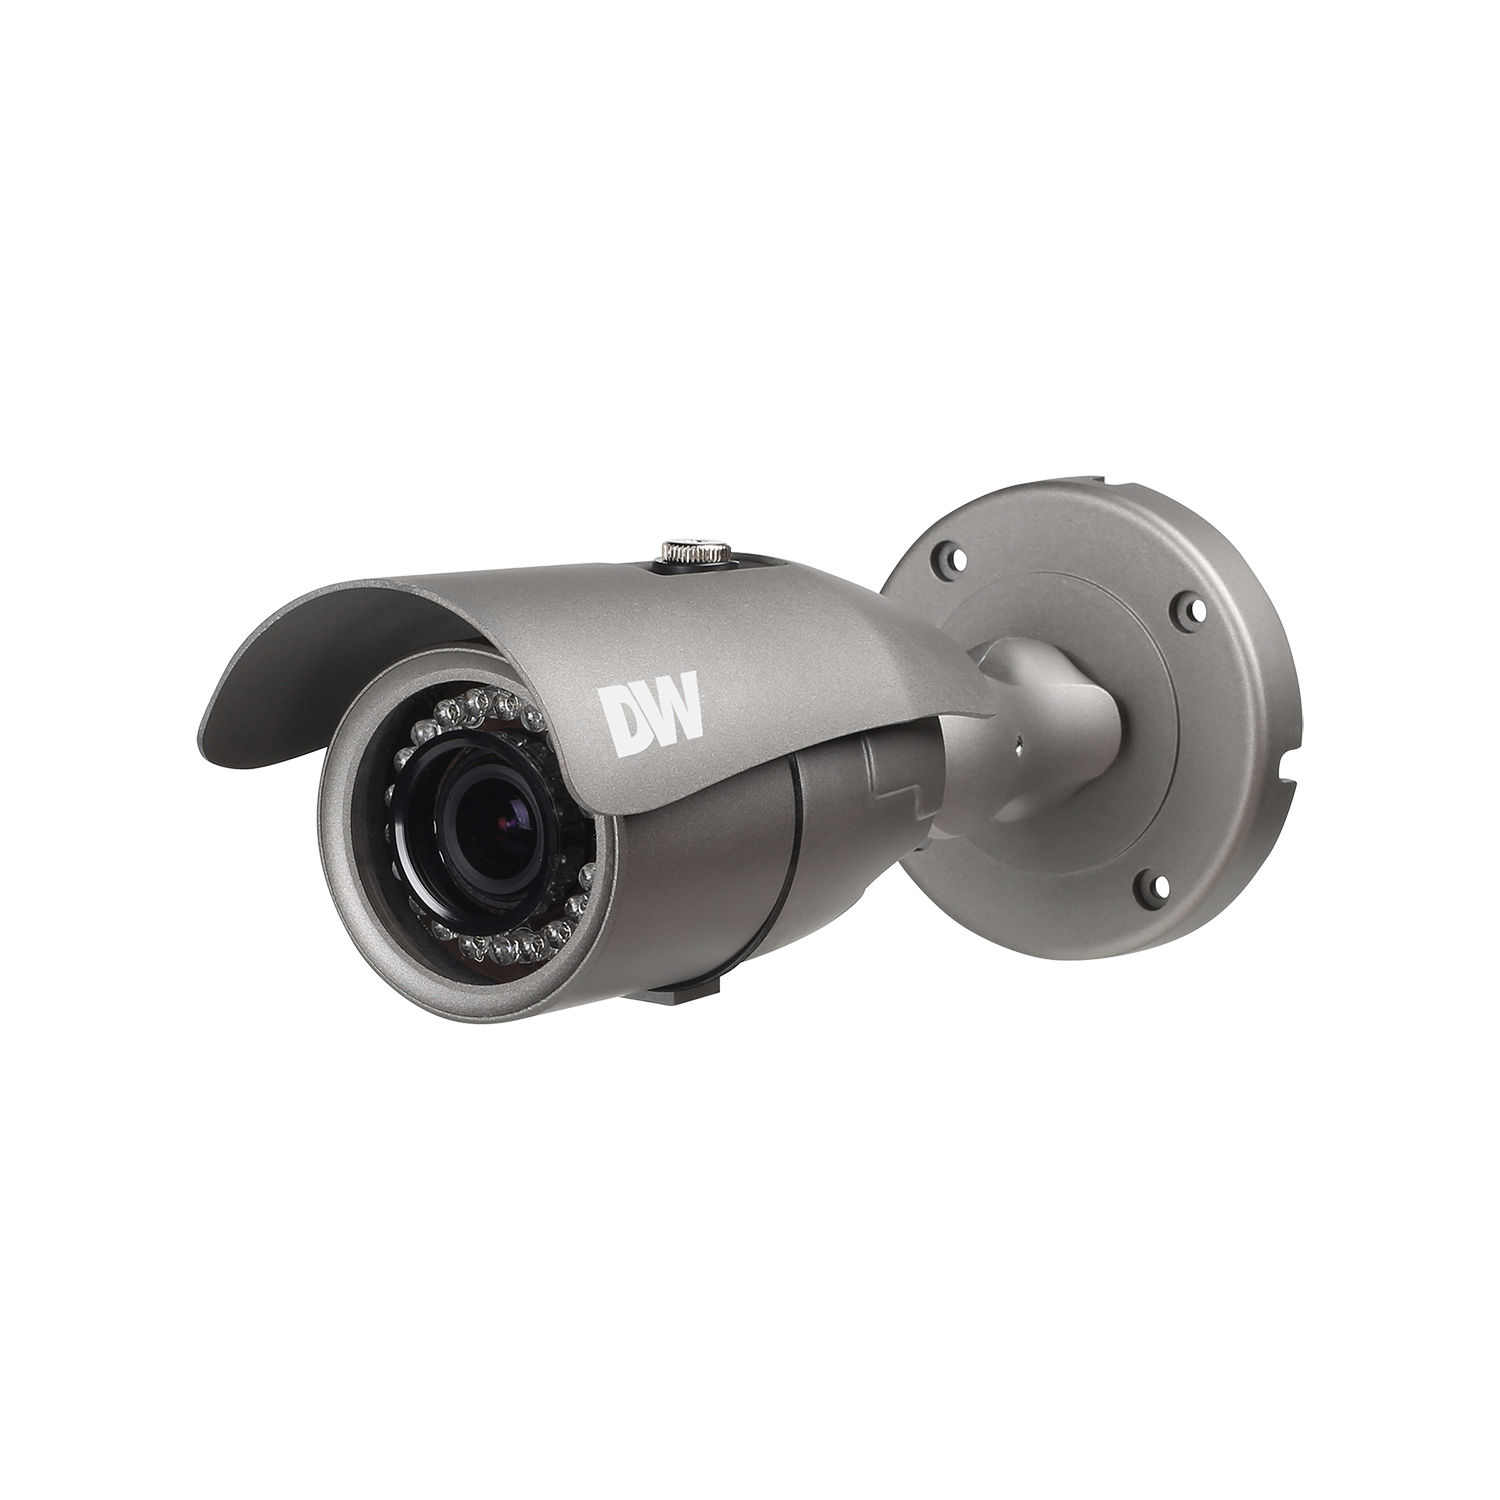 21 Mp Indoor Outdoor Universal Hd Over Coax Bullet Camera With Ir Home Blog Product Highlights Poe Network Switch For Ip Review